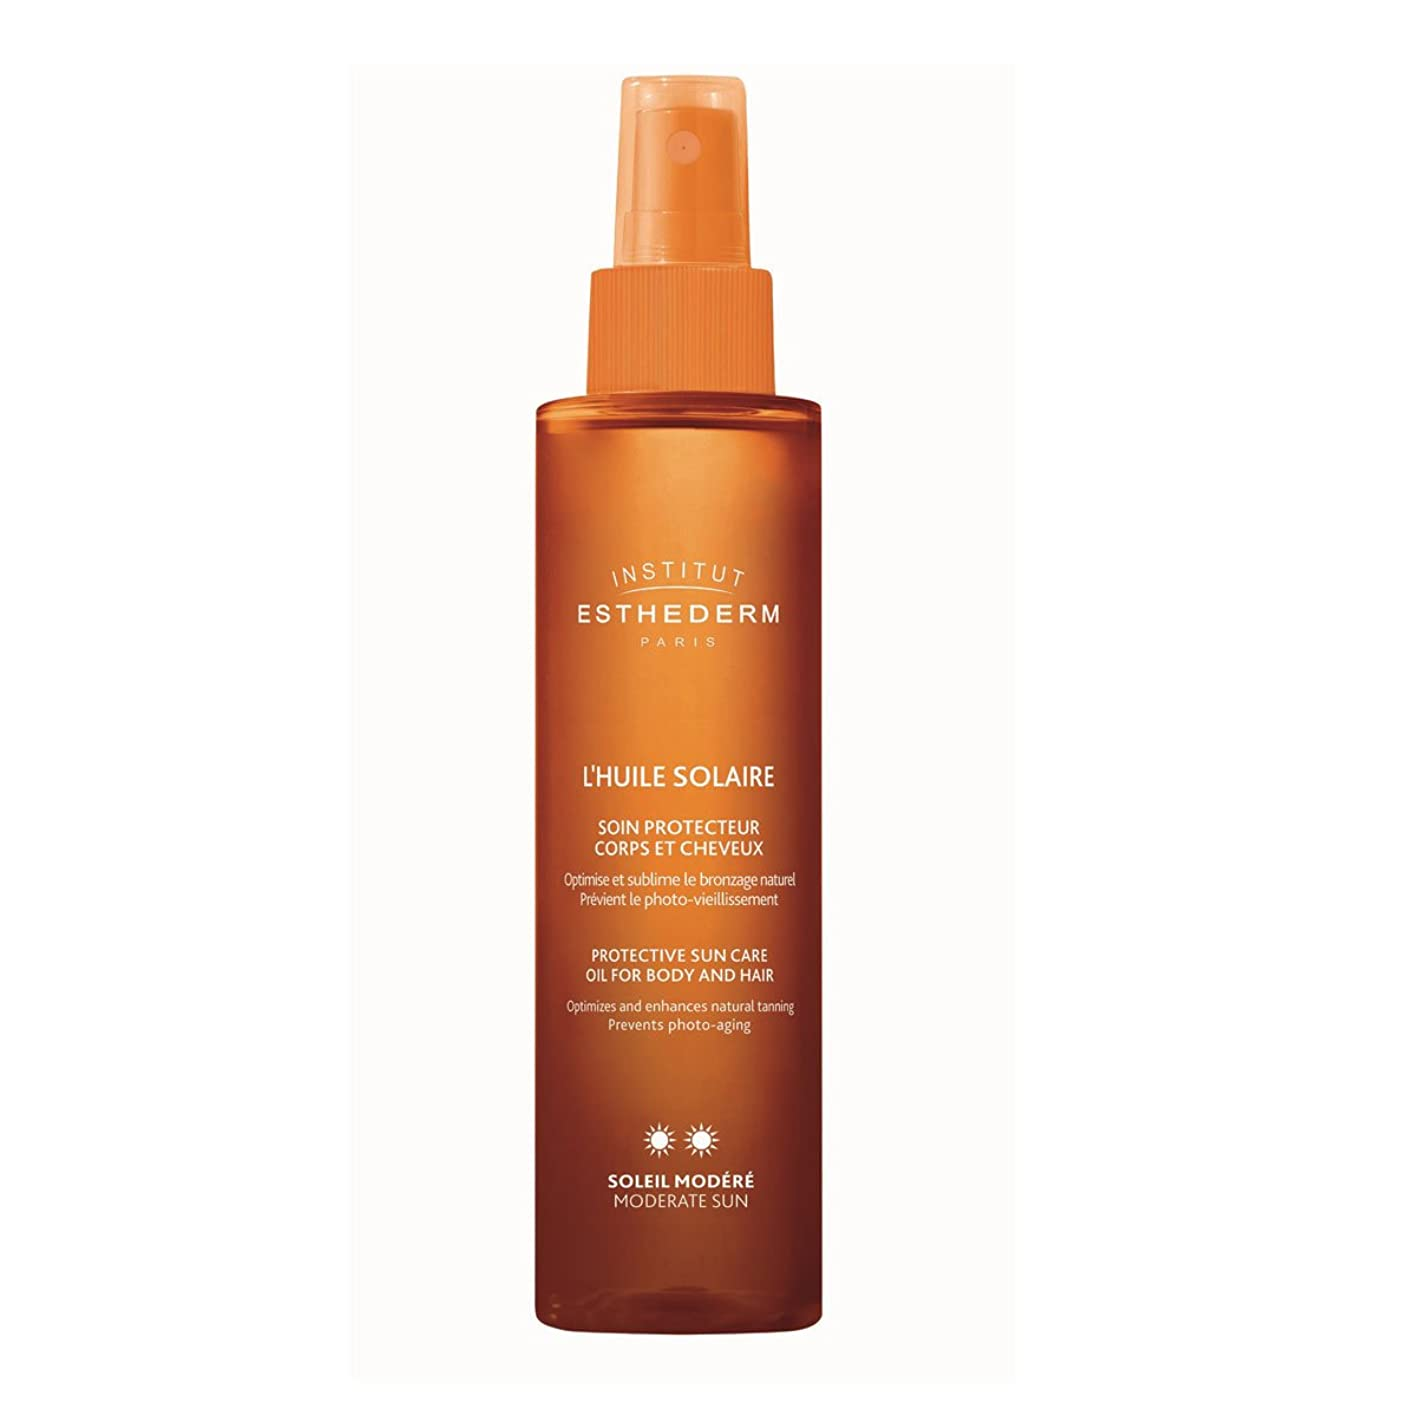 ペンフレンド教科書曖昧なInstitut Esthederm Protective Sun Care Oil For Body And Hair Moderate Sun 150ml [並行輸入品]